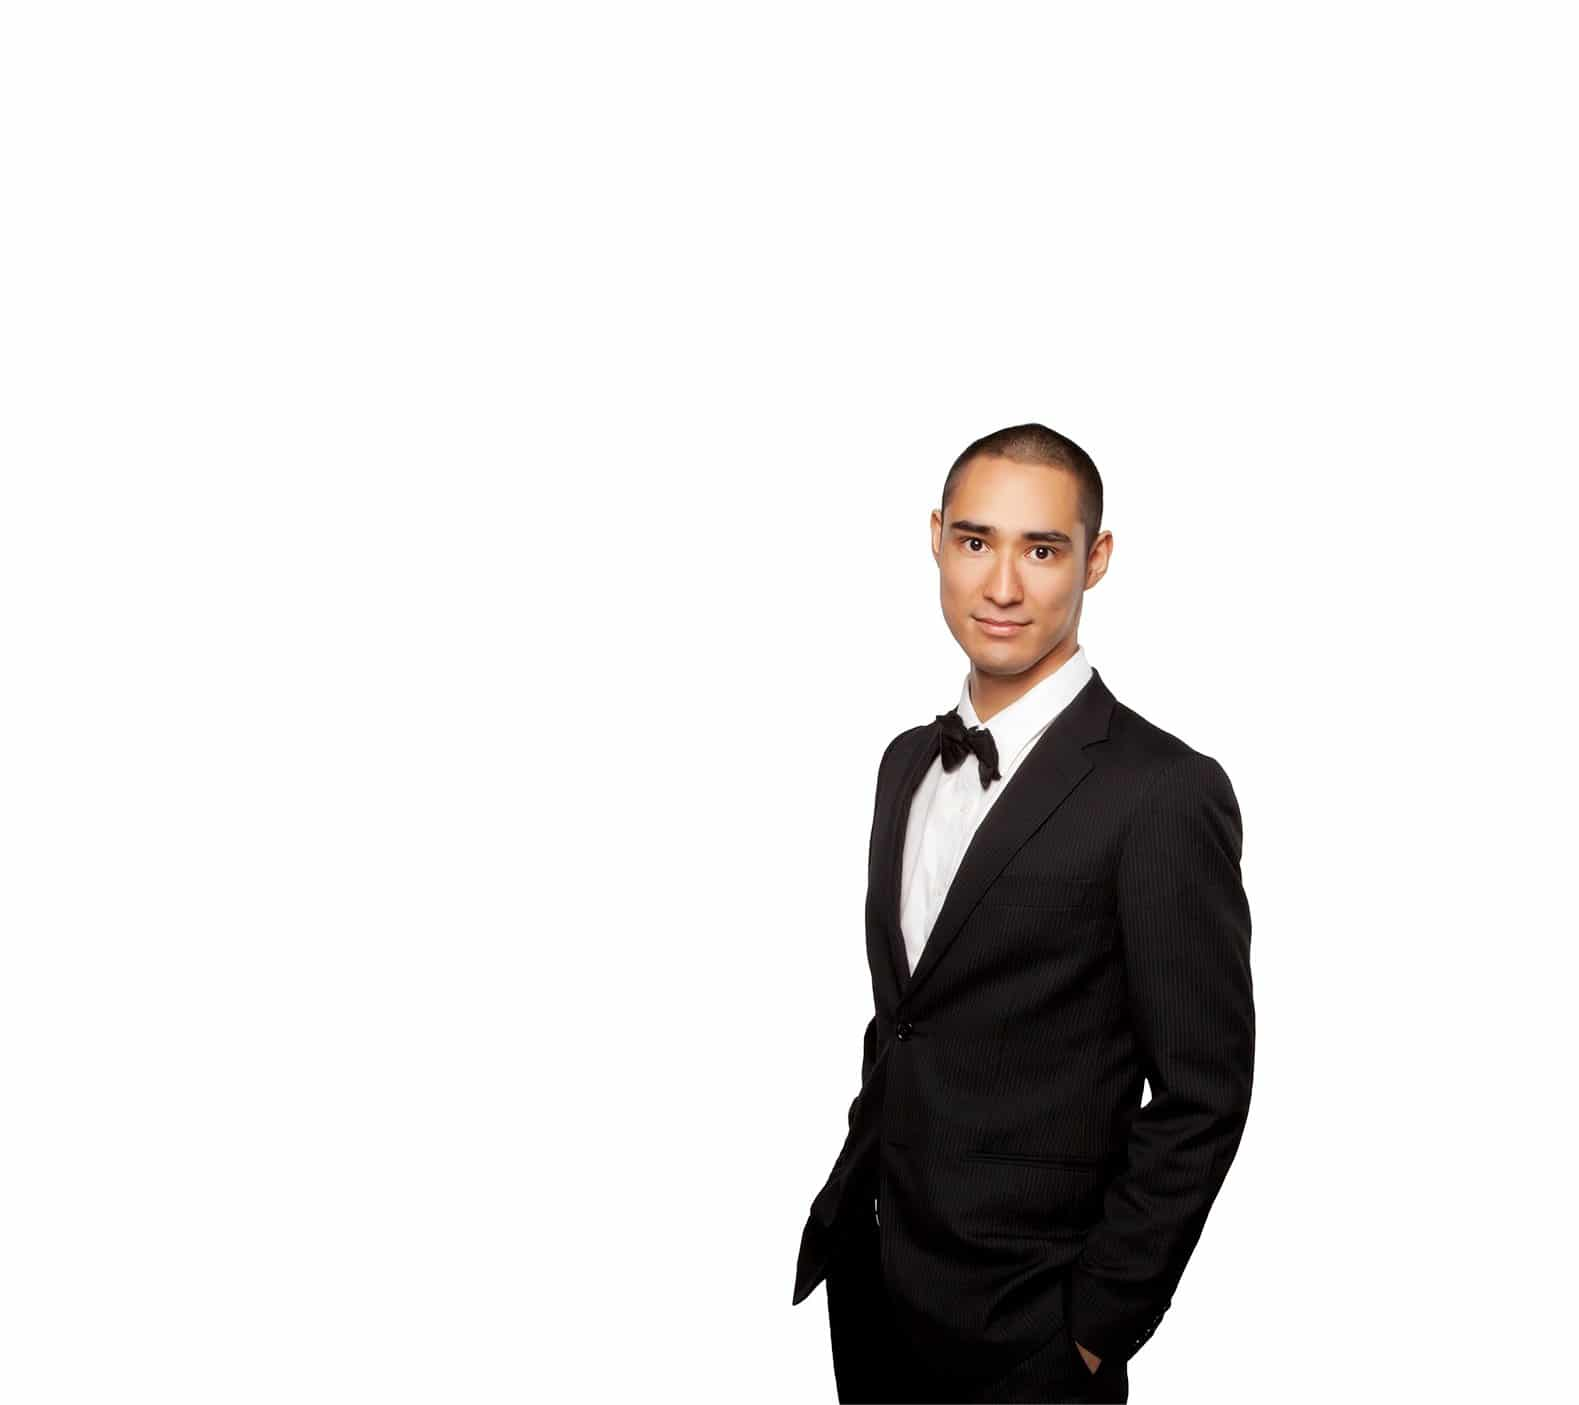 Professional man in a tuxedo with white background